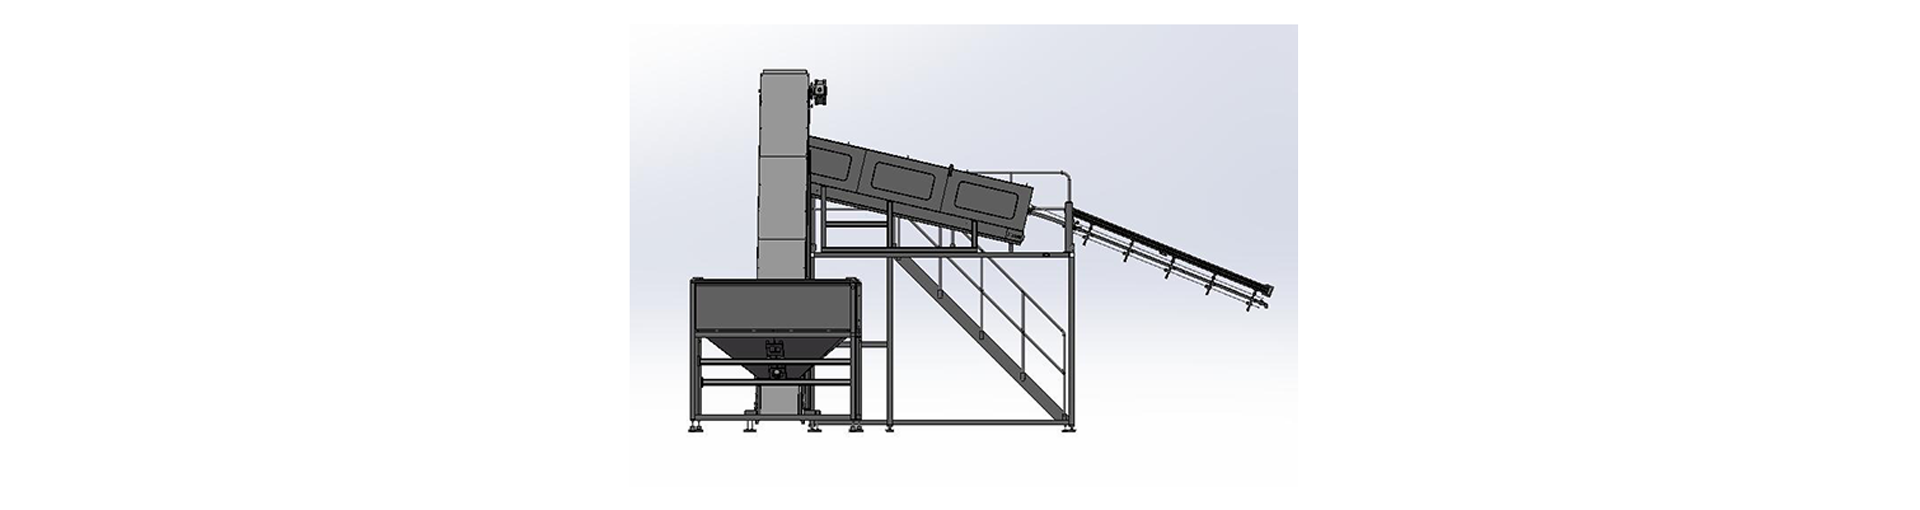 Closure Automation System Image